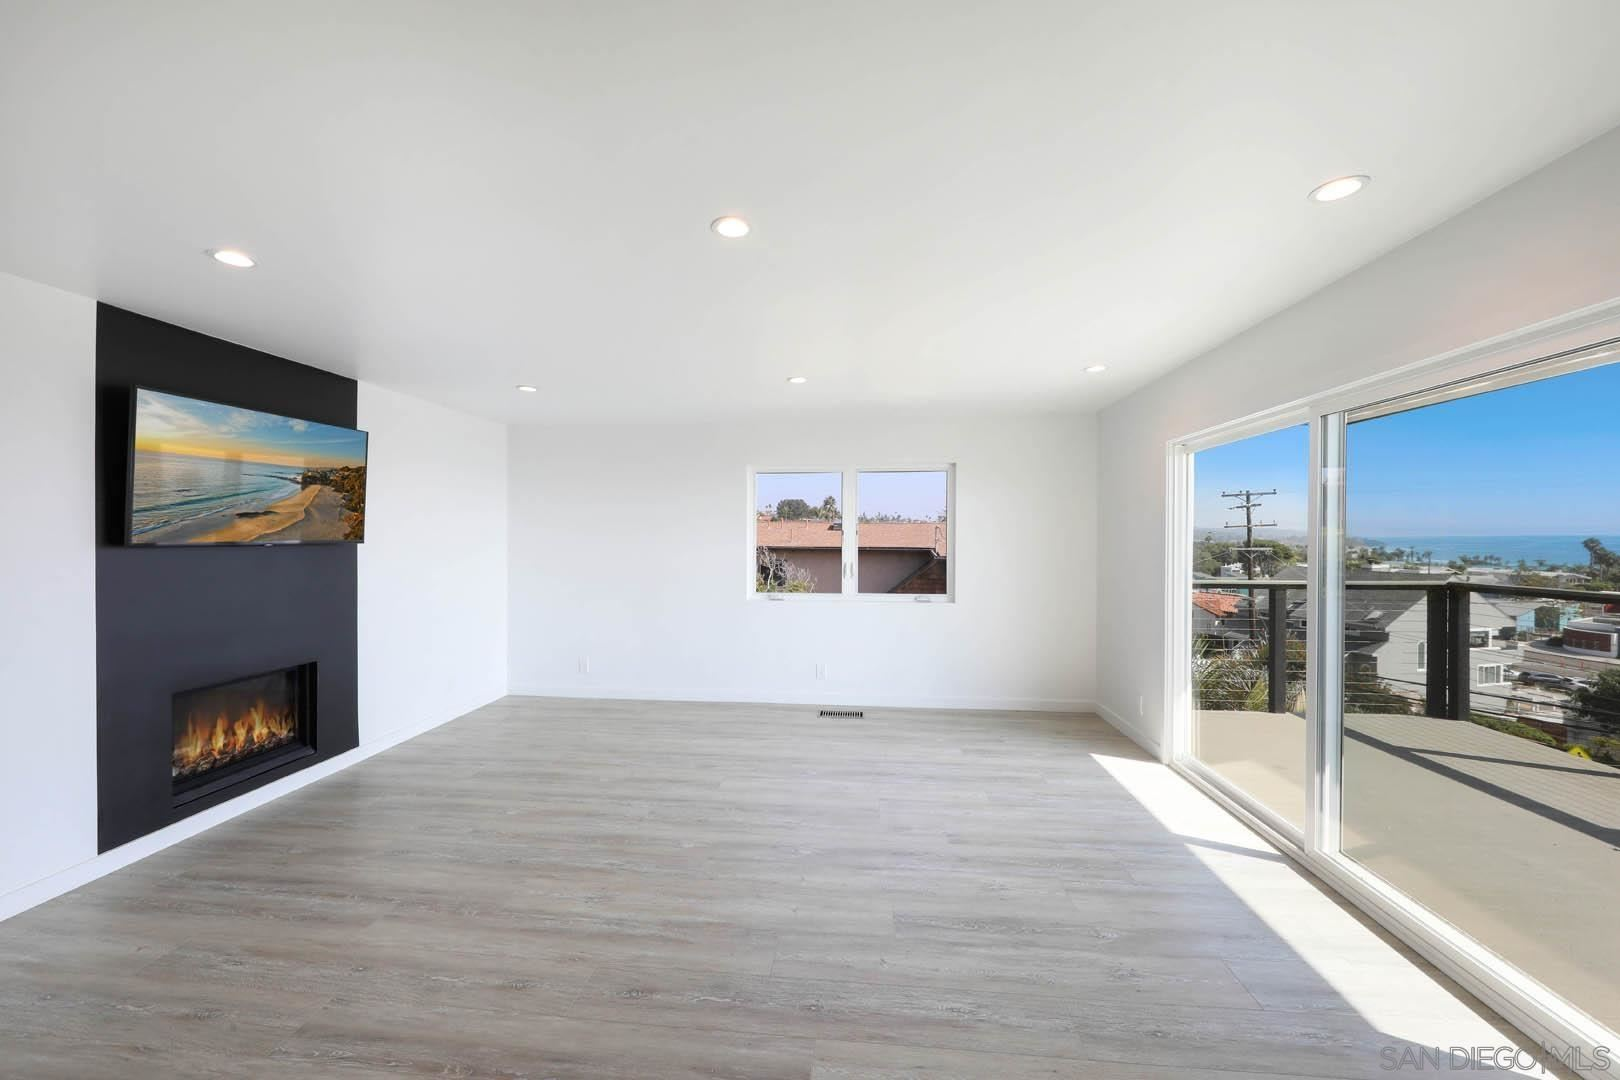 Photo of 1831 Westminster Dr, Cardiff by the Sea, CA 92007 (MLS # 210025955)